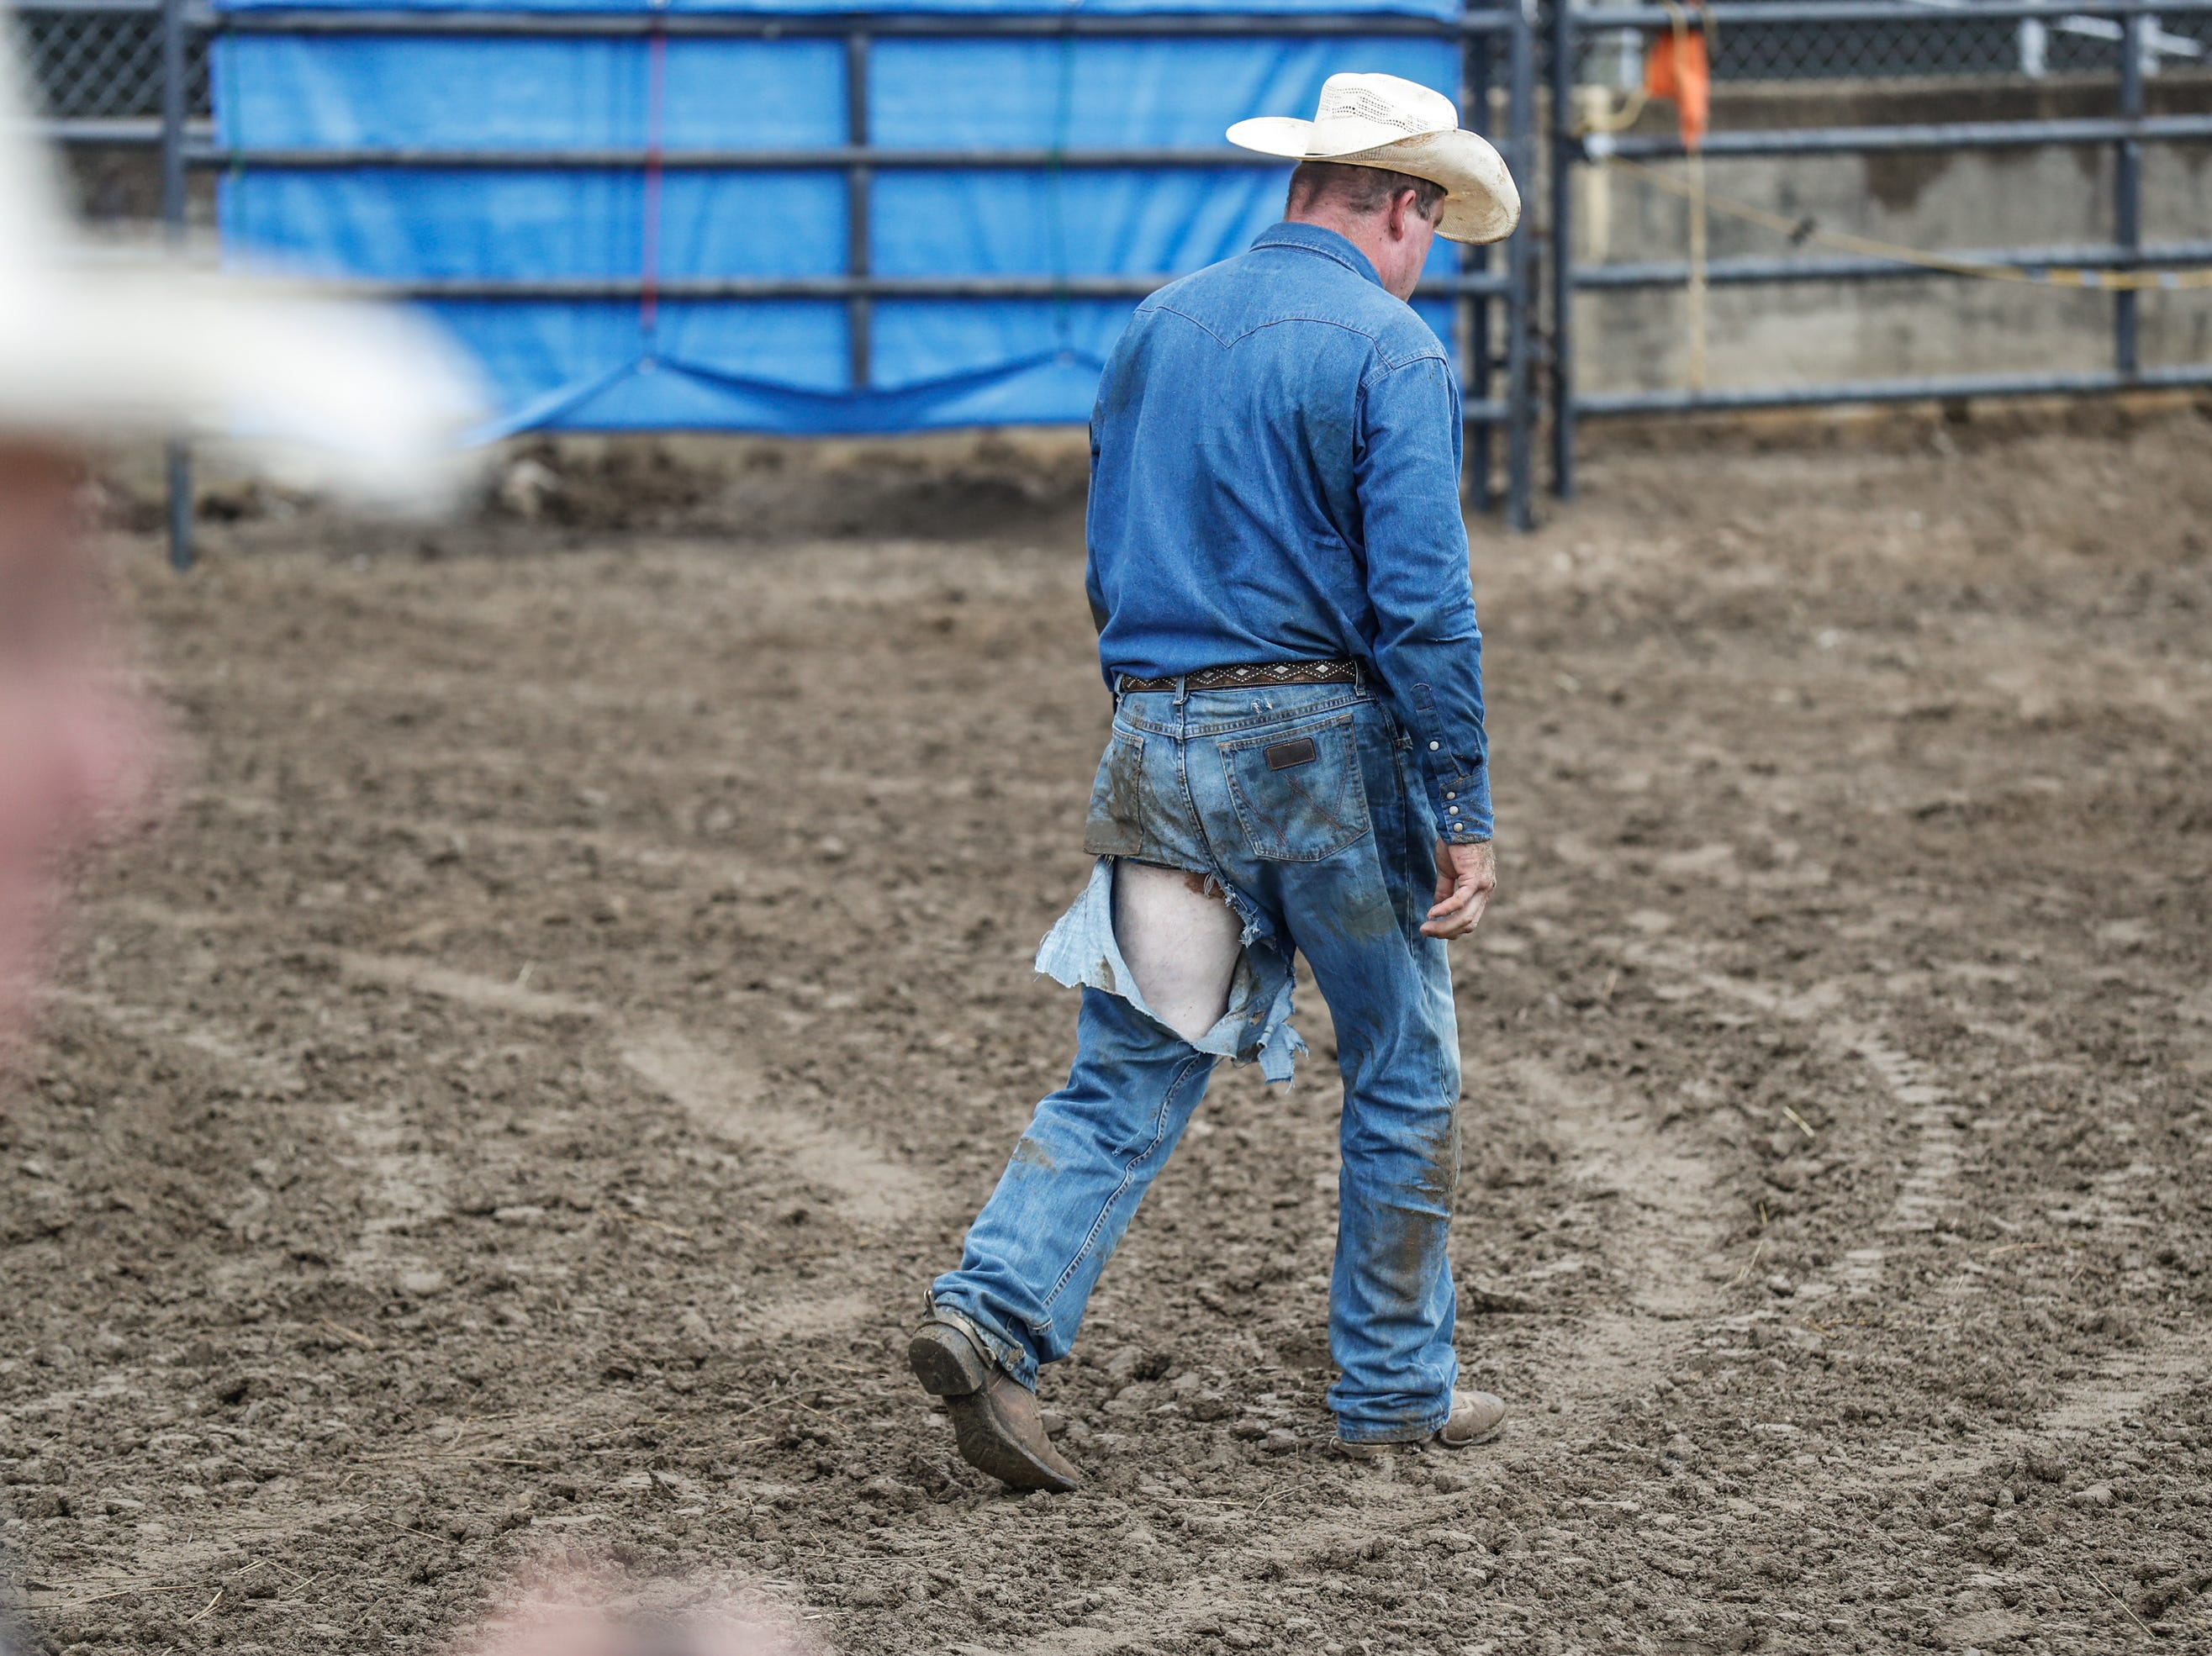 Jesse McPike looses part of his jeans while competing in the steer wrestling competition during the 3 Bar J Rodeo Company's Championship Rodeo at the Indiana State Fair on Wednesday, Aug. 15, 2018.